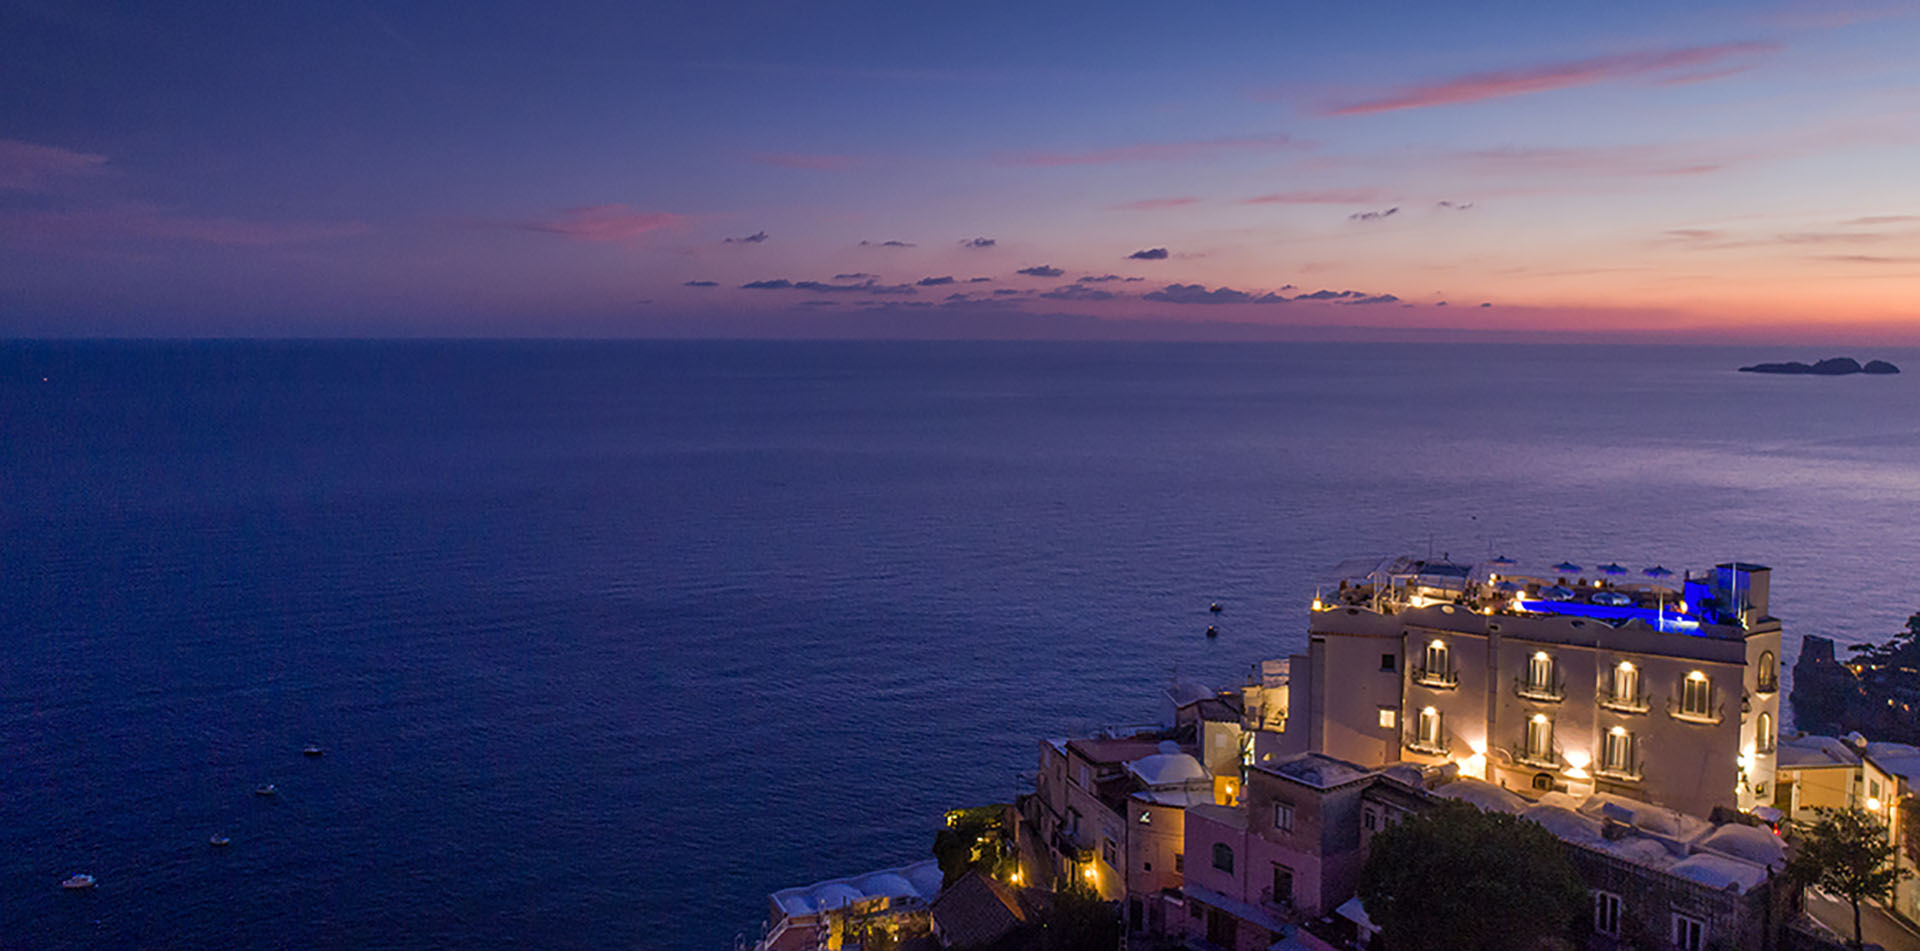 Europe Italy Amalfi Coast Salerno Positano Hotel Villa Franca exterior ocean view at sunset - luxury vacation destinations